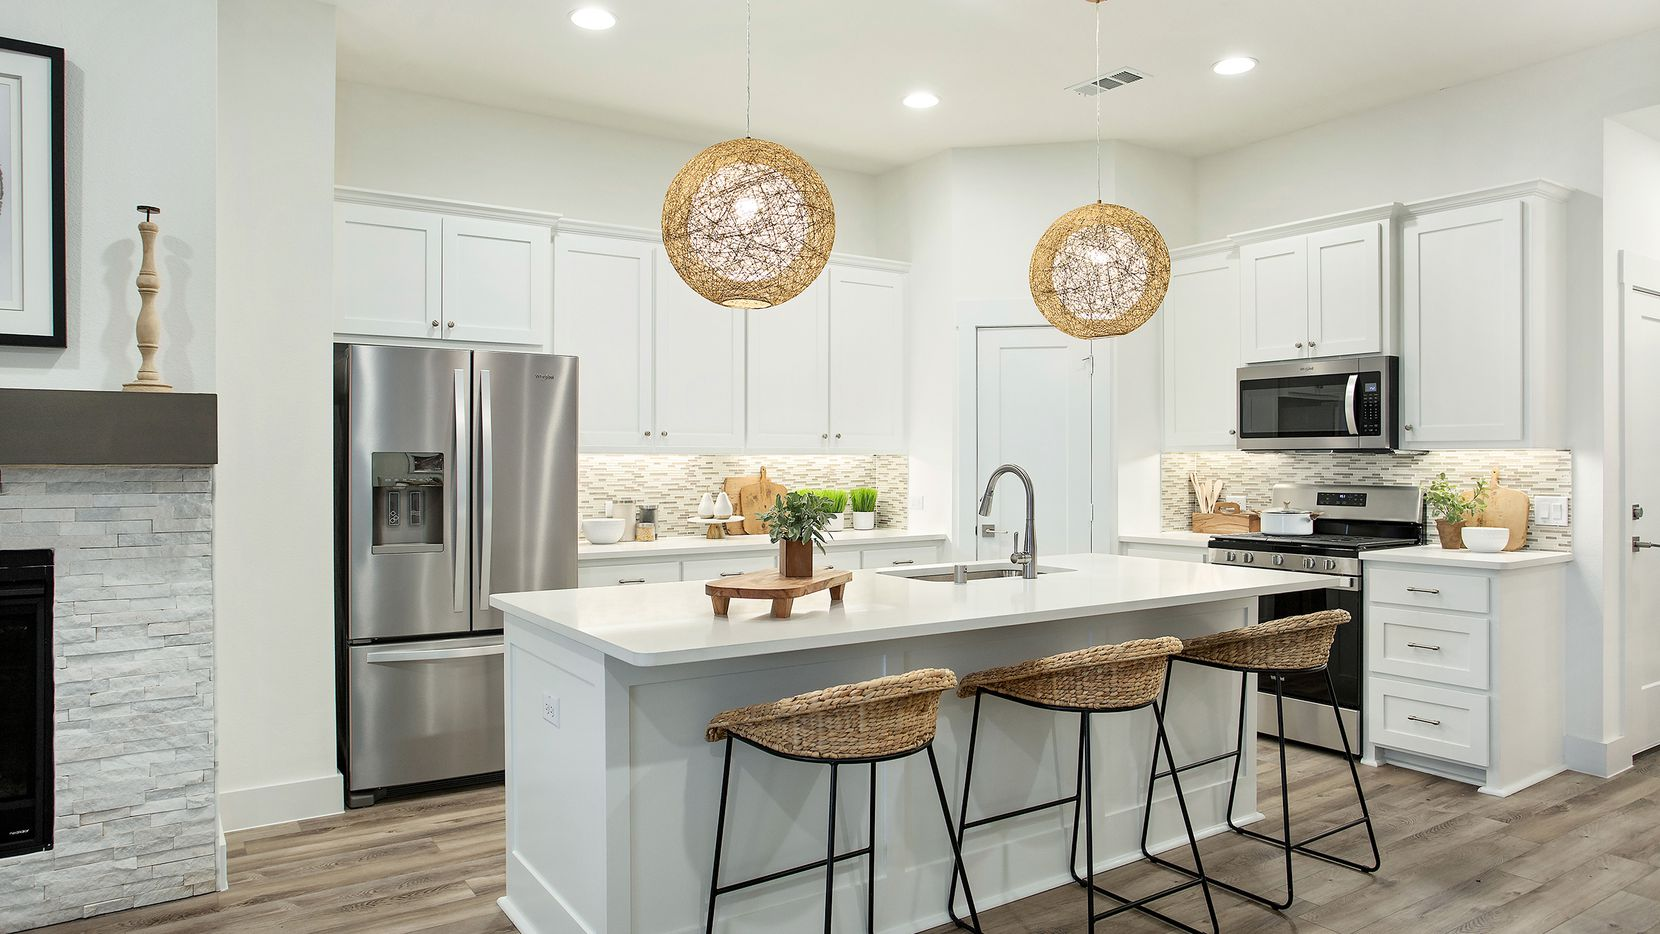 Move-in-ready villas by Grenadier Homes are available now, priced from the mid-$200s, in Riverset, a new master-planned community in Garland.